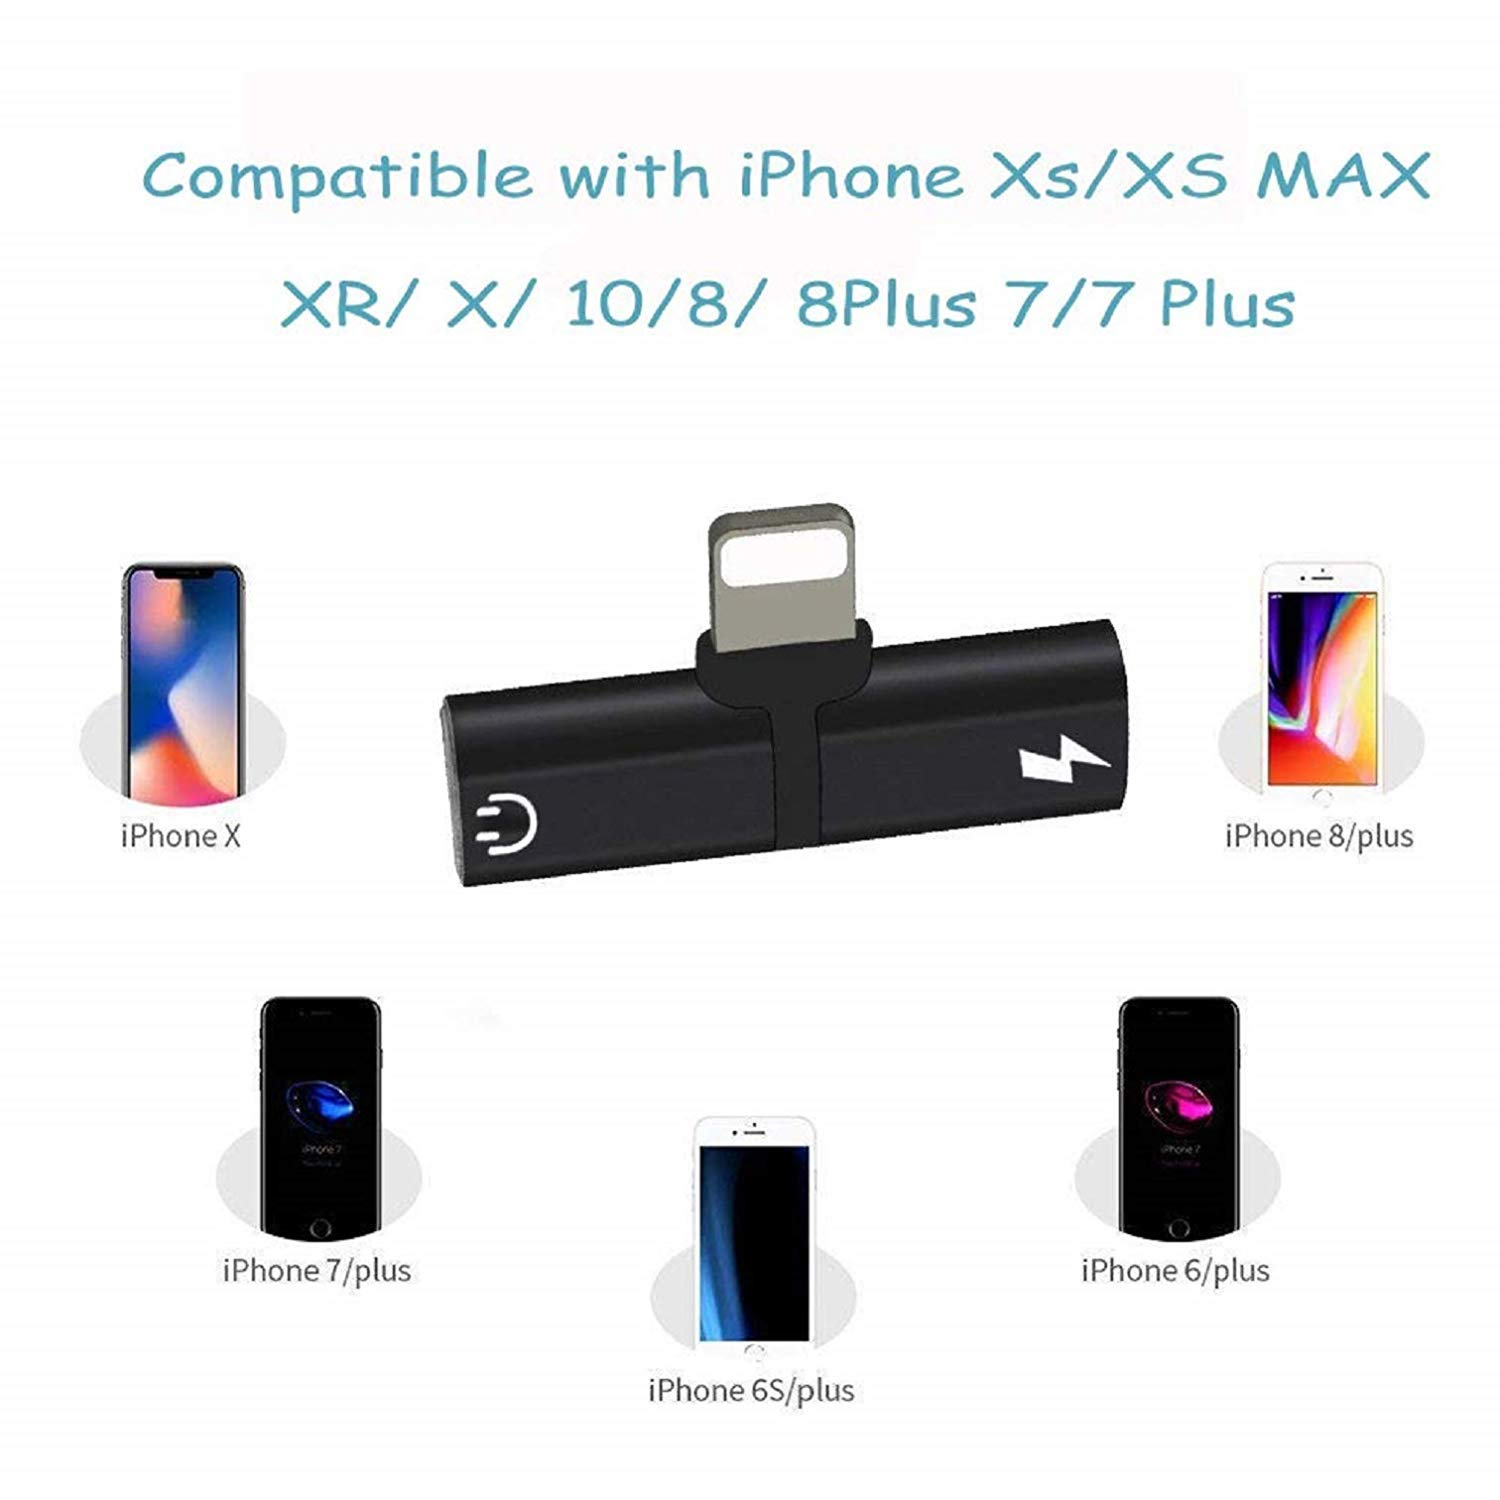 Headphone Adapter for iPhone X//XS//XS MAX//XR//8// 8Plus// 7//7 Plus Headset Adaptor Splitter Earphone Connector Convertor 2 in 1 Mini Accessories Cables Call Charge Music Wire Control iOS System.